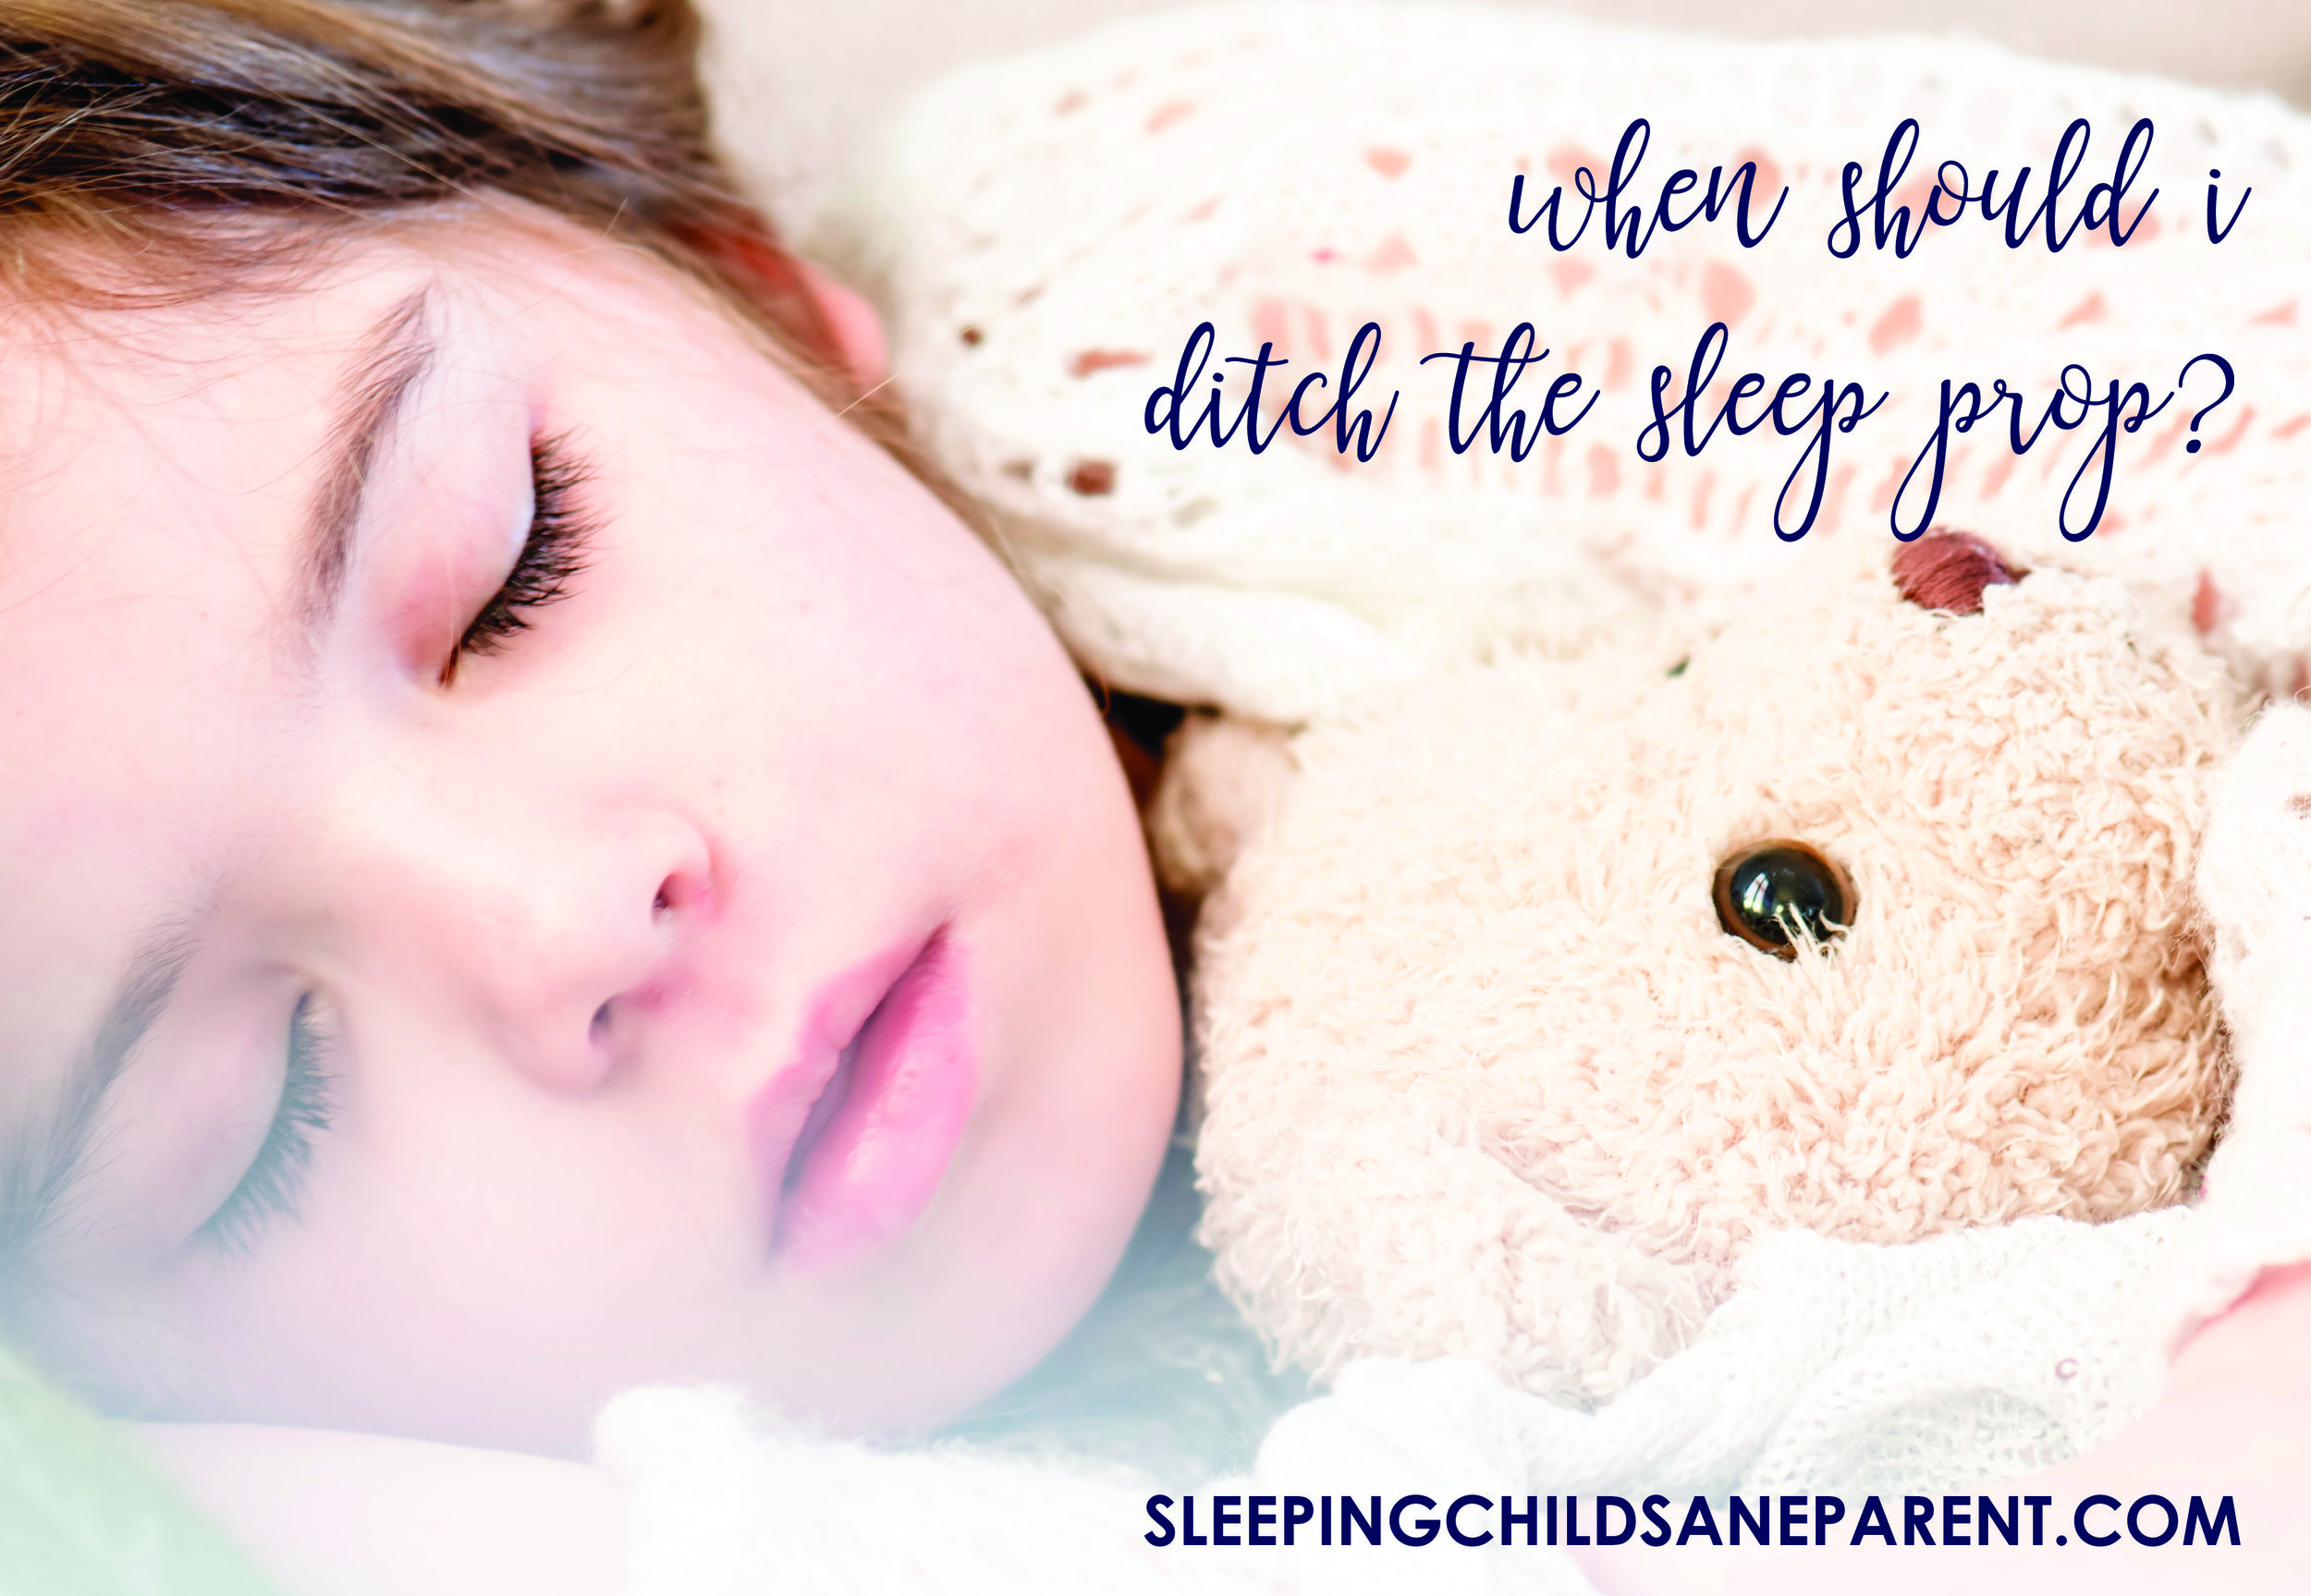 Sleep props are a huge factor when it comes to sleeping through the night or sleeping for an entire nap. Theseprops can be a blessing or a curse -- a blessing when they work and a curse when they don't! Check out this blog post to find out if it's the right time to ditch that sleep prop.